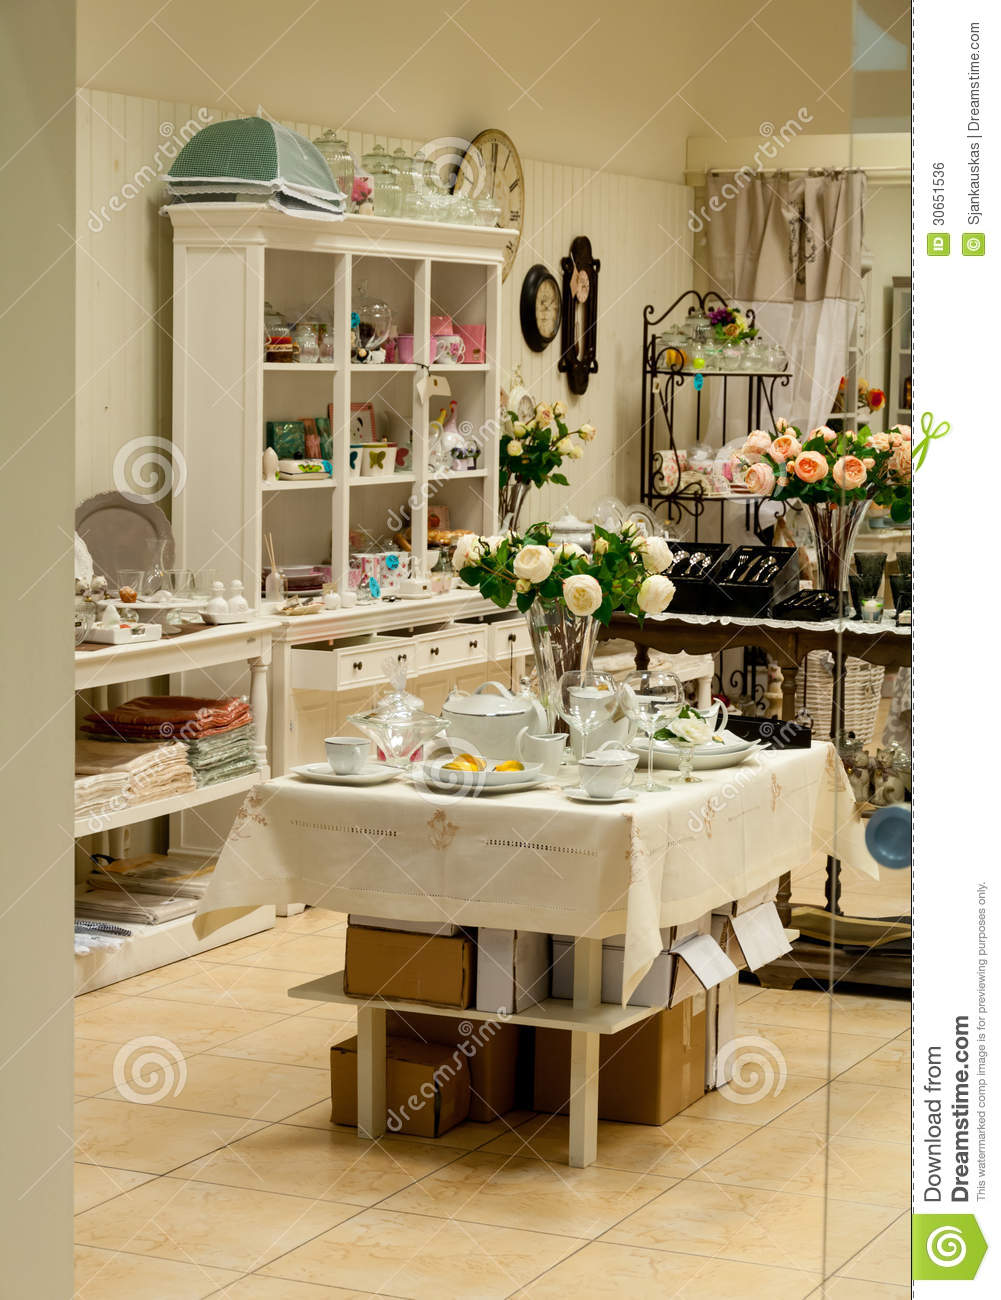 Home Decor And Dishes Shop Royalty Free Stock Image Image 30651536